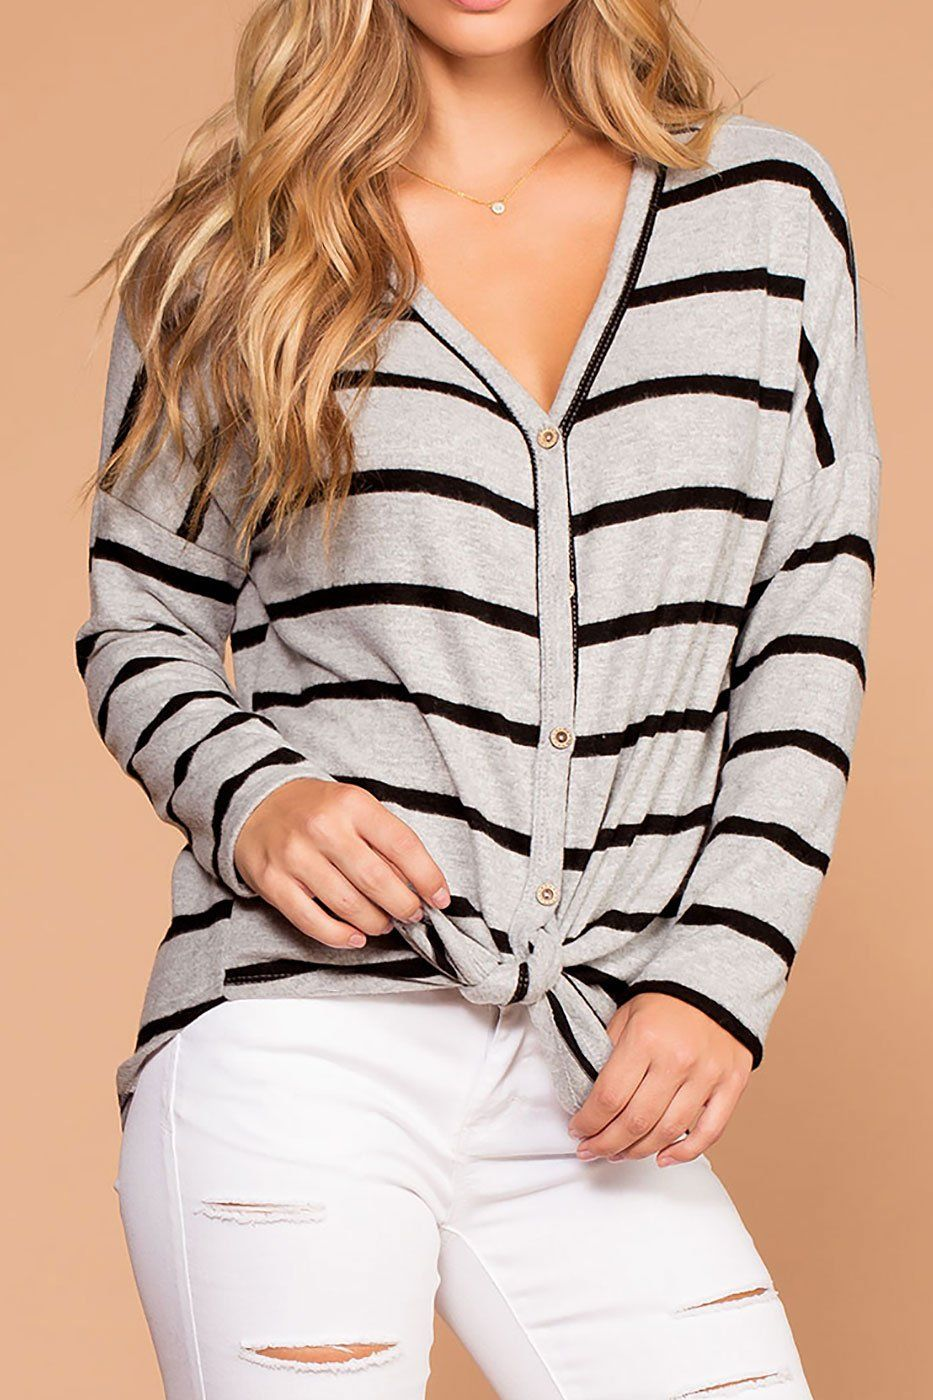 Colette Grey and Black Stripe Brushed Knit Tie-Front Sweater